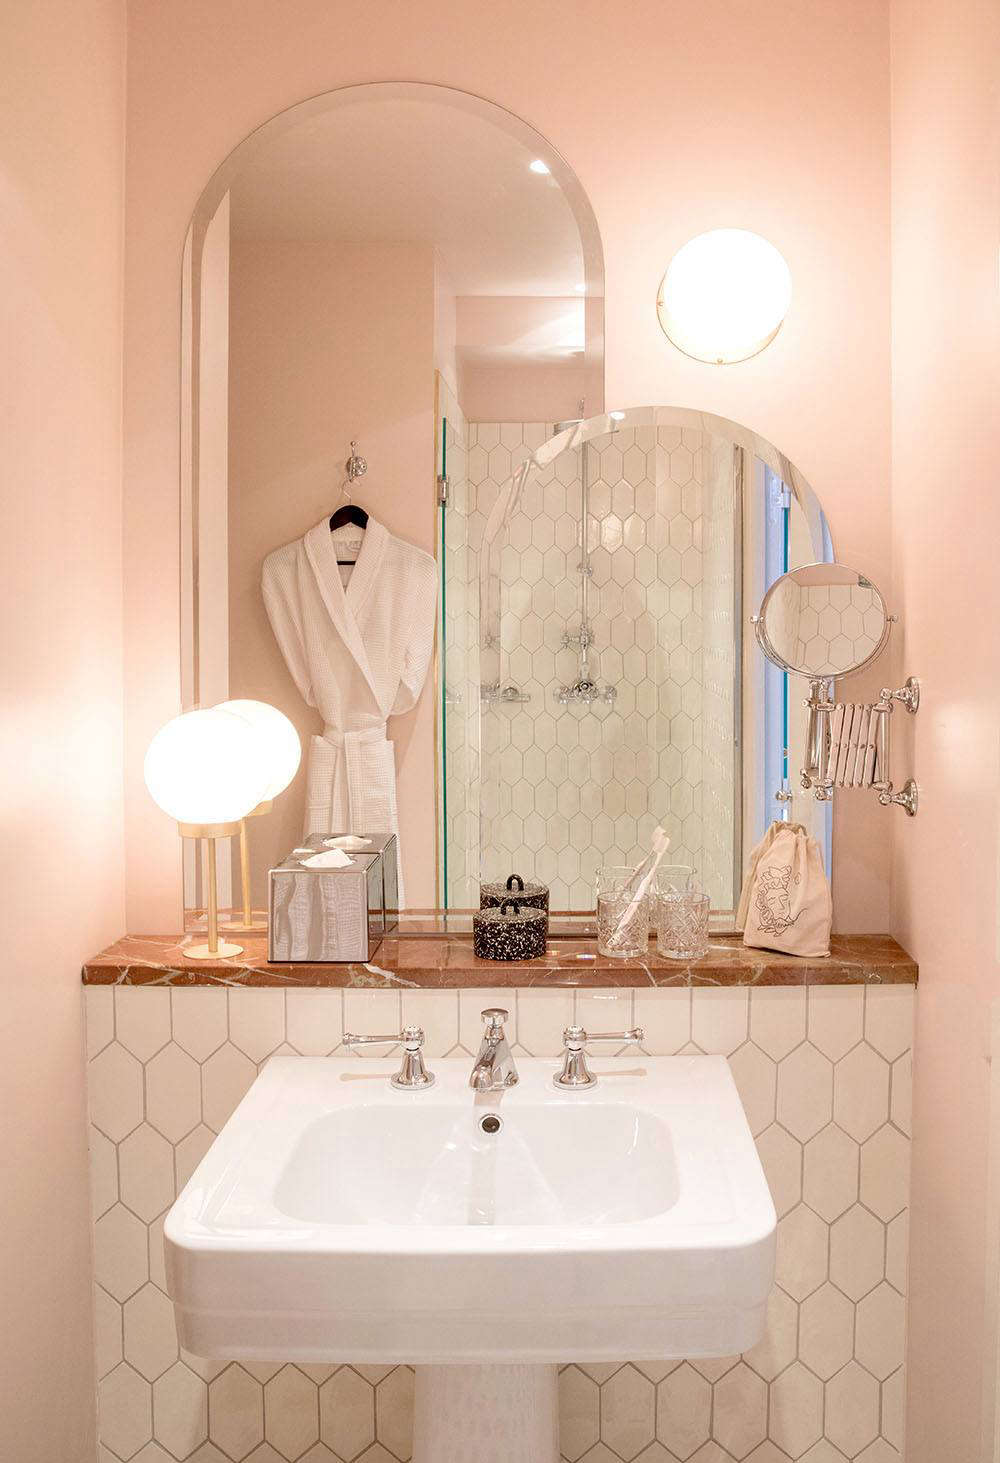 Must see Wallpaper Marble Cotton Candy - grands-boulevards-hotel-pink-bathroom  Trends_92523.jpg